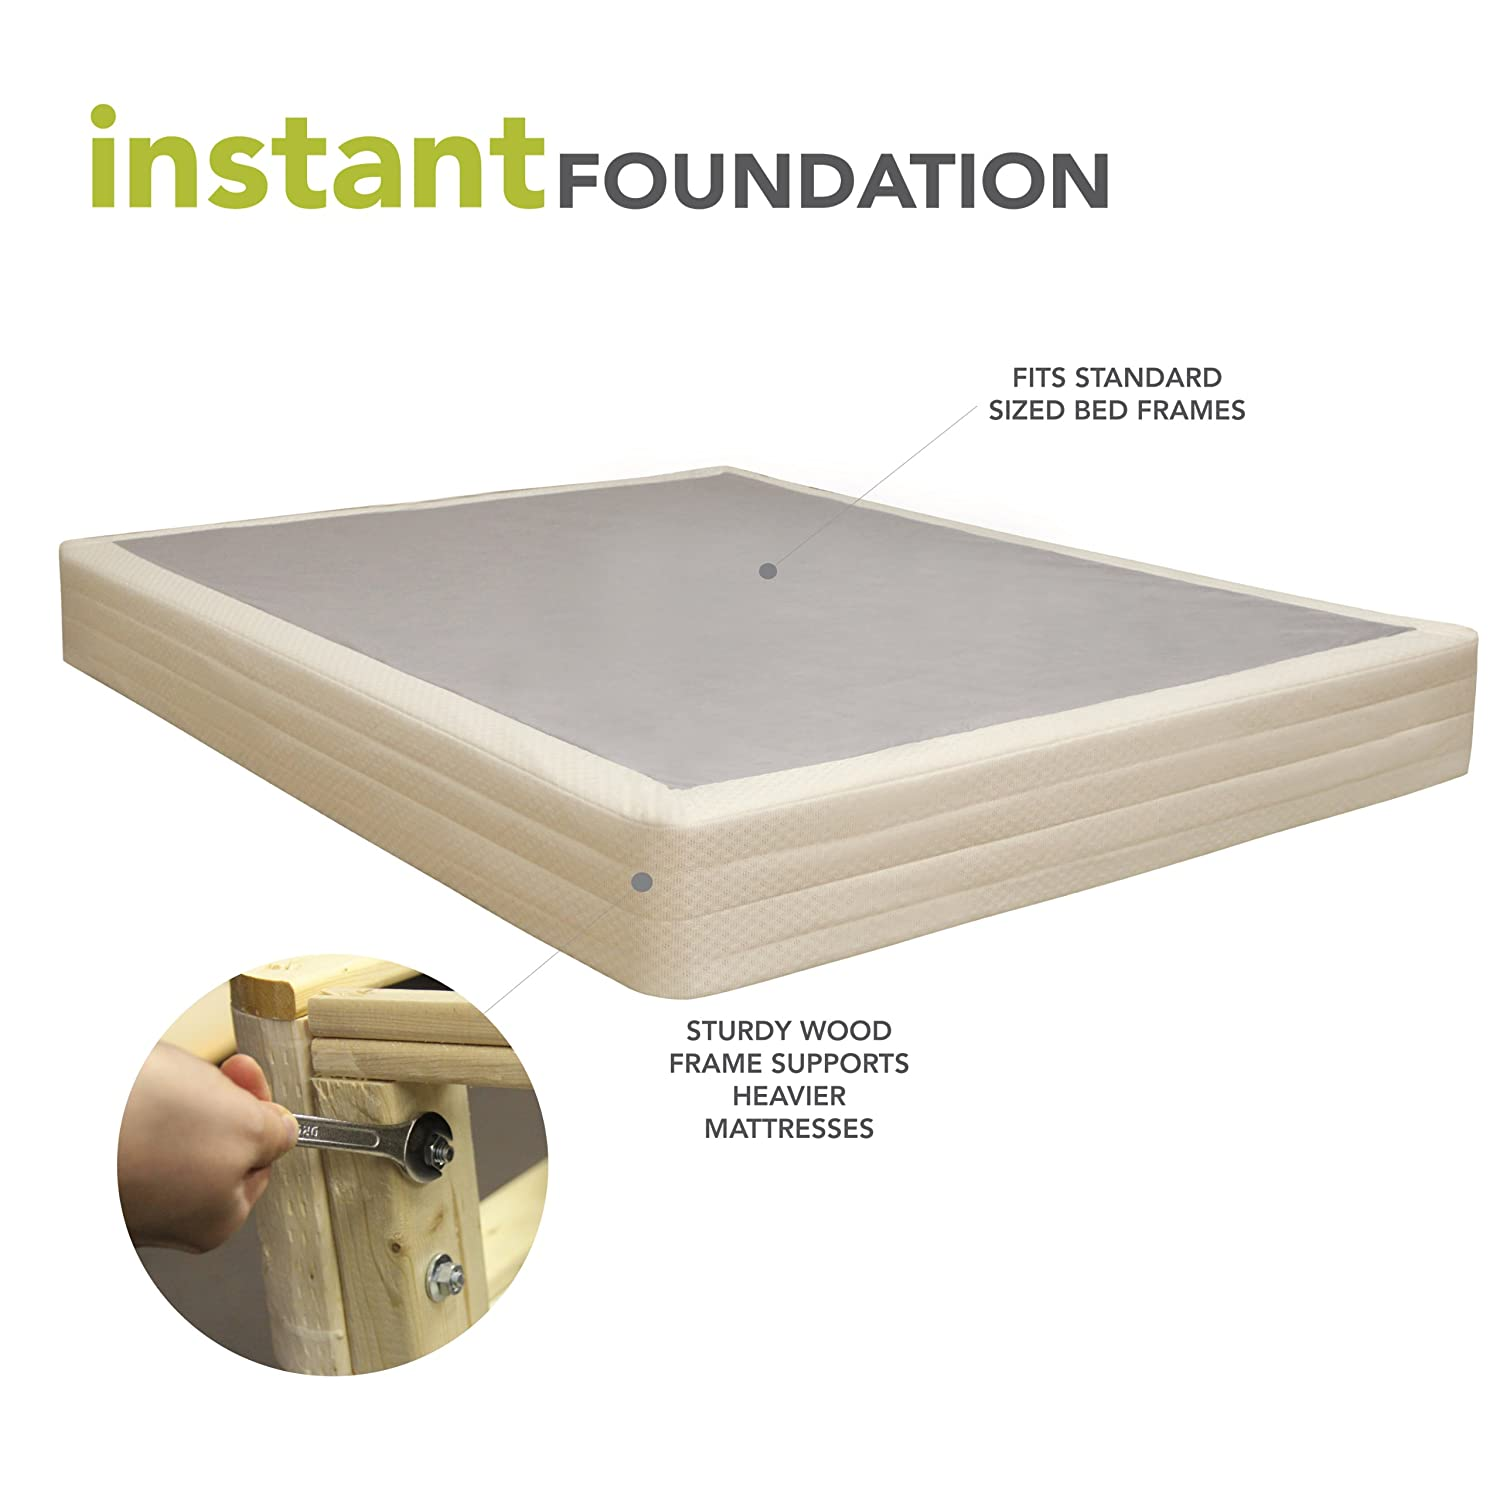 Classic Brands 8 Inch Instant Foundation Regular Profile Foundation or Box Spring Replacement - Twin X-Long